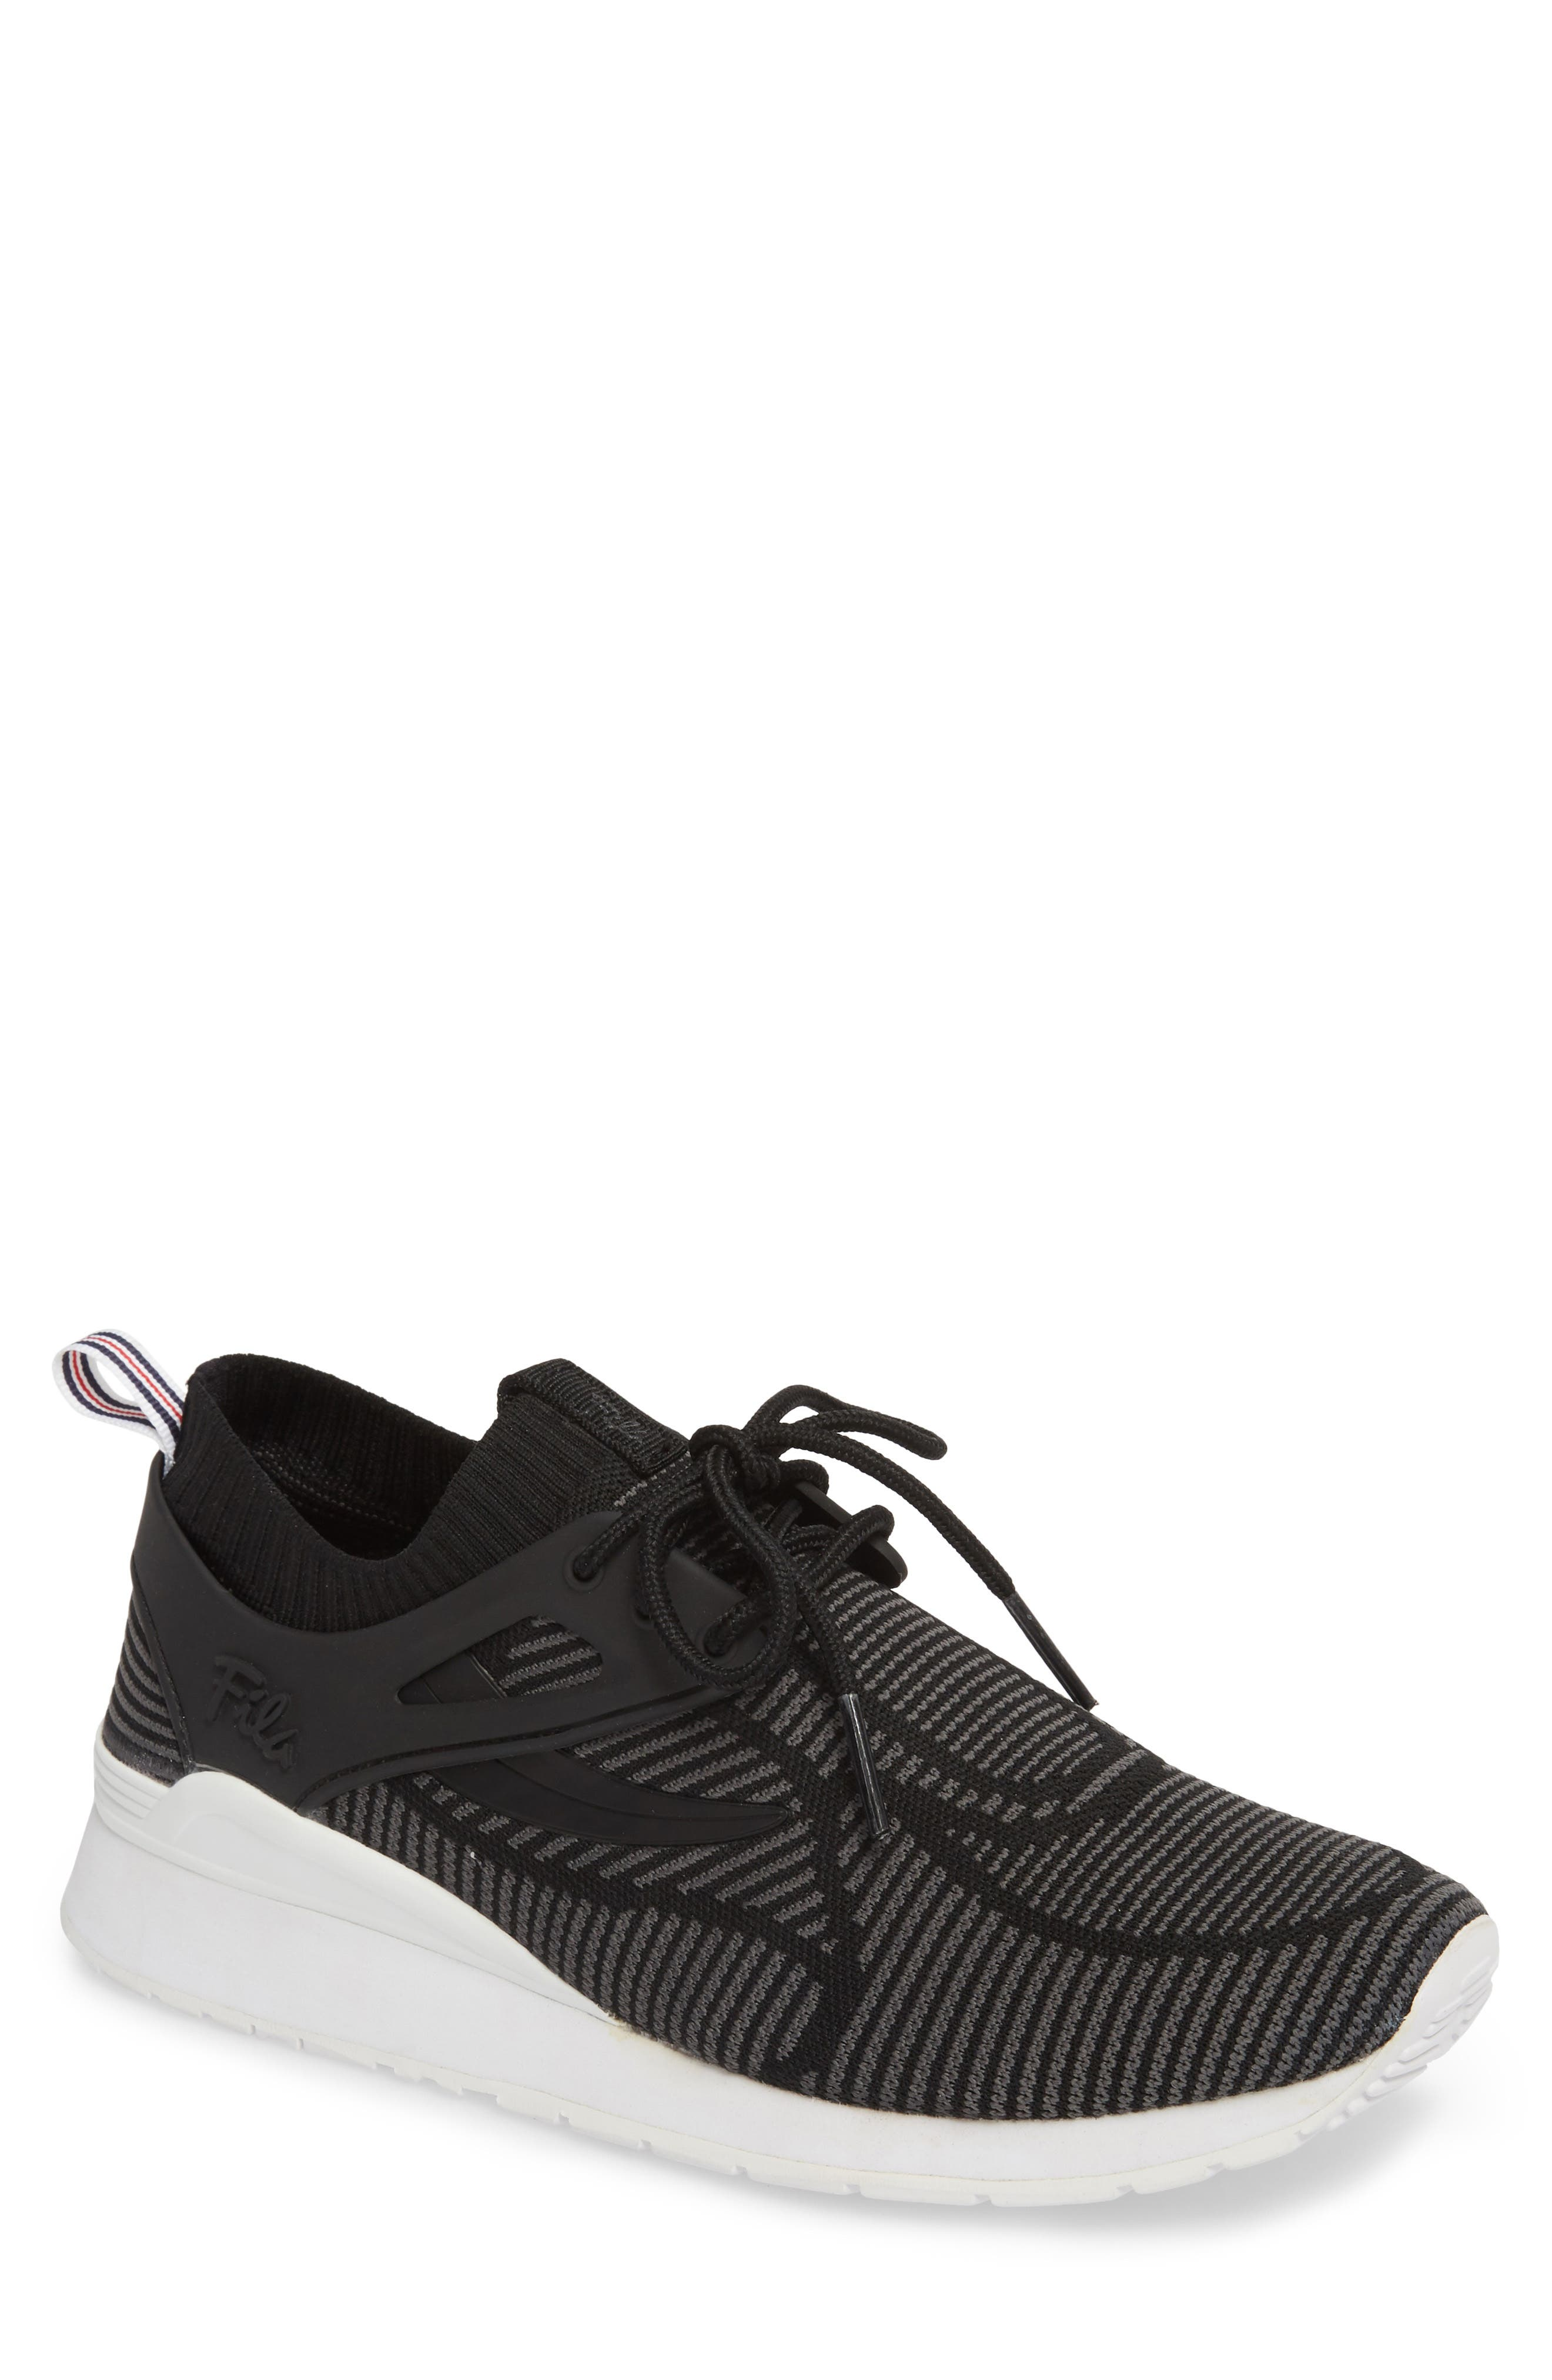 Overpass 2.0 Knit Sneaker,                         Main,                         color, BLACK/ WHITE